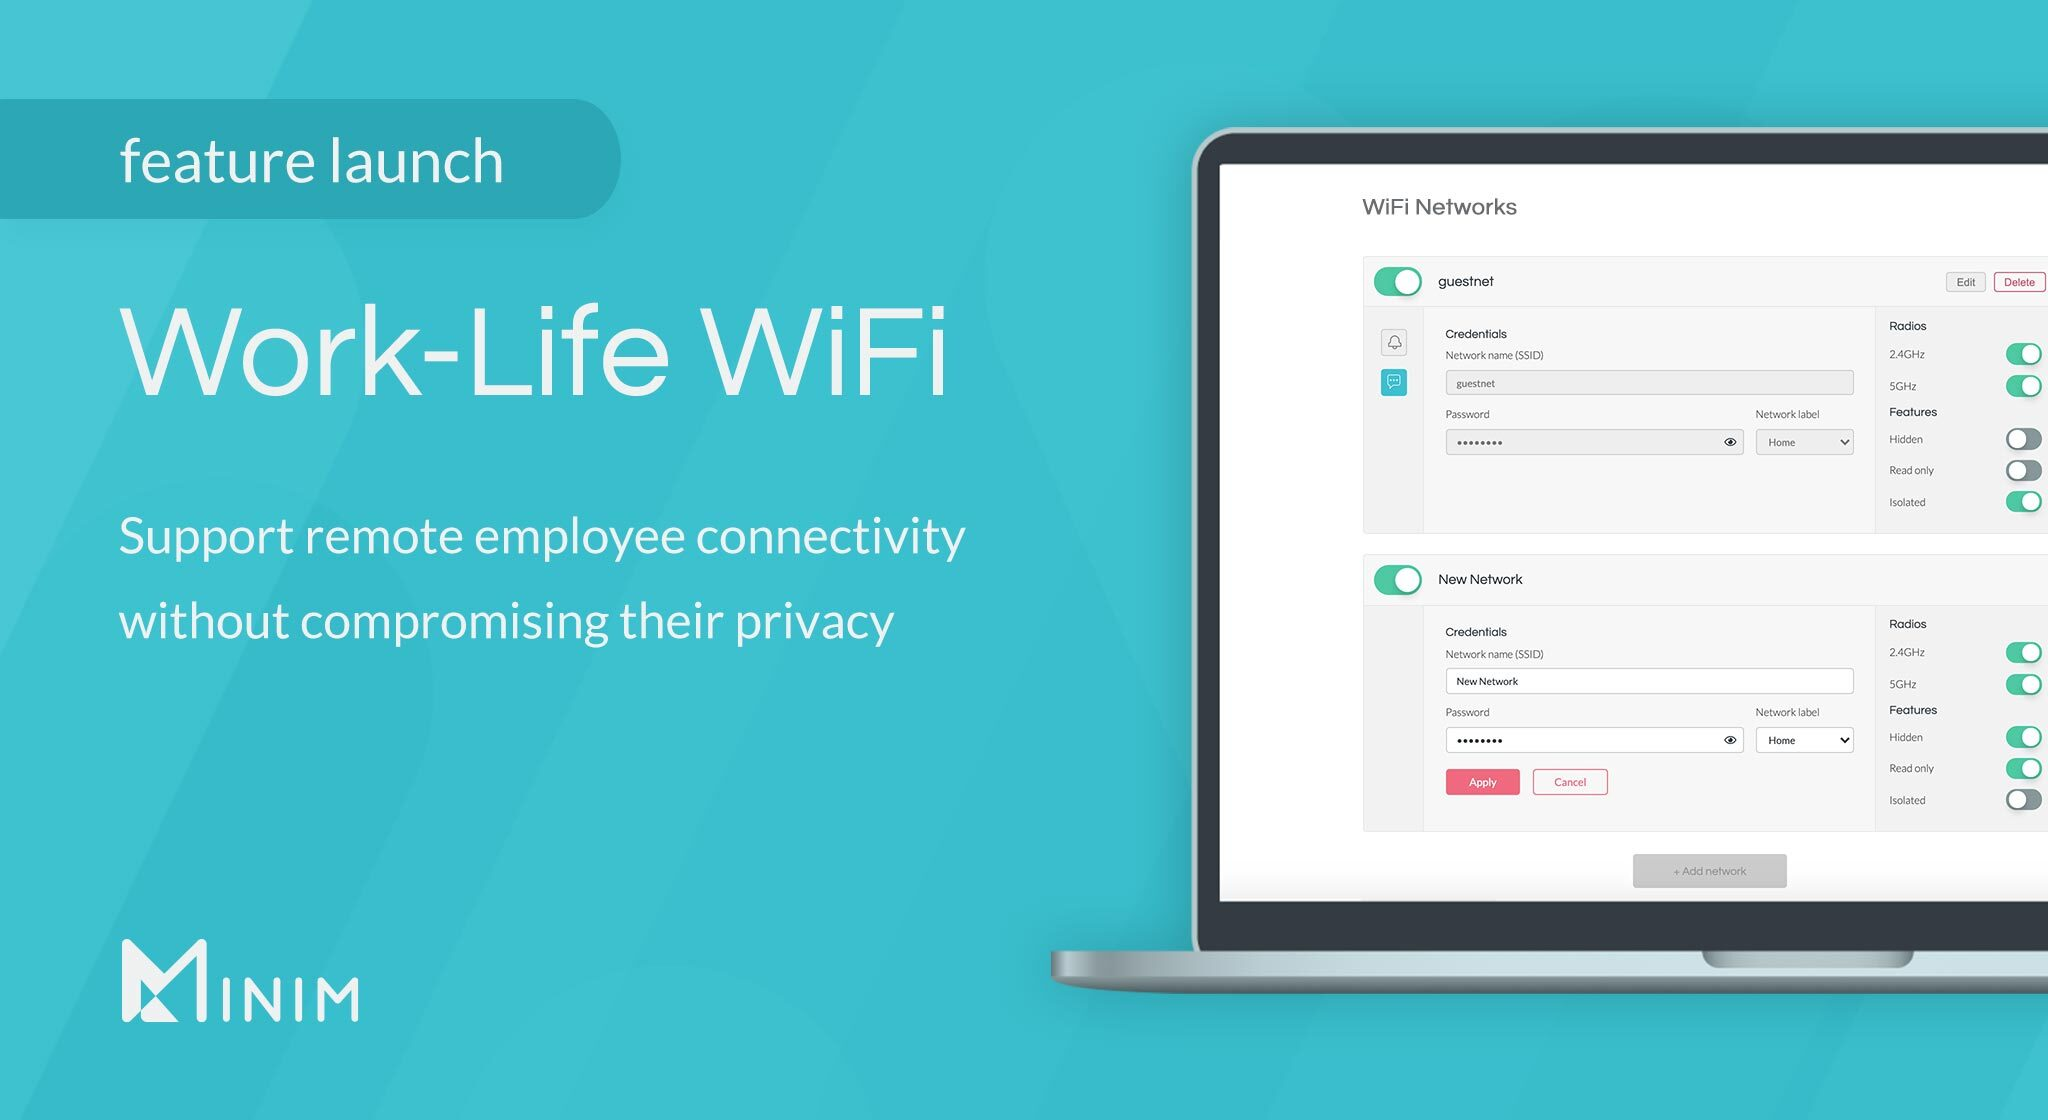 Introducing Work-Life WiFi